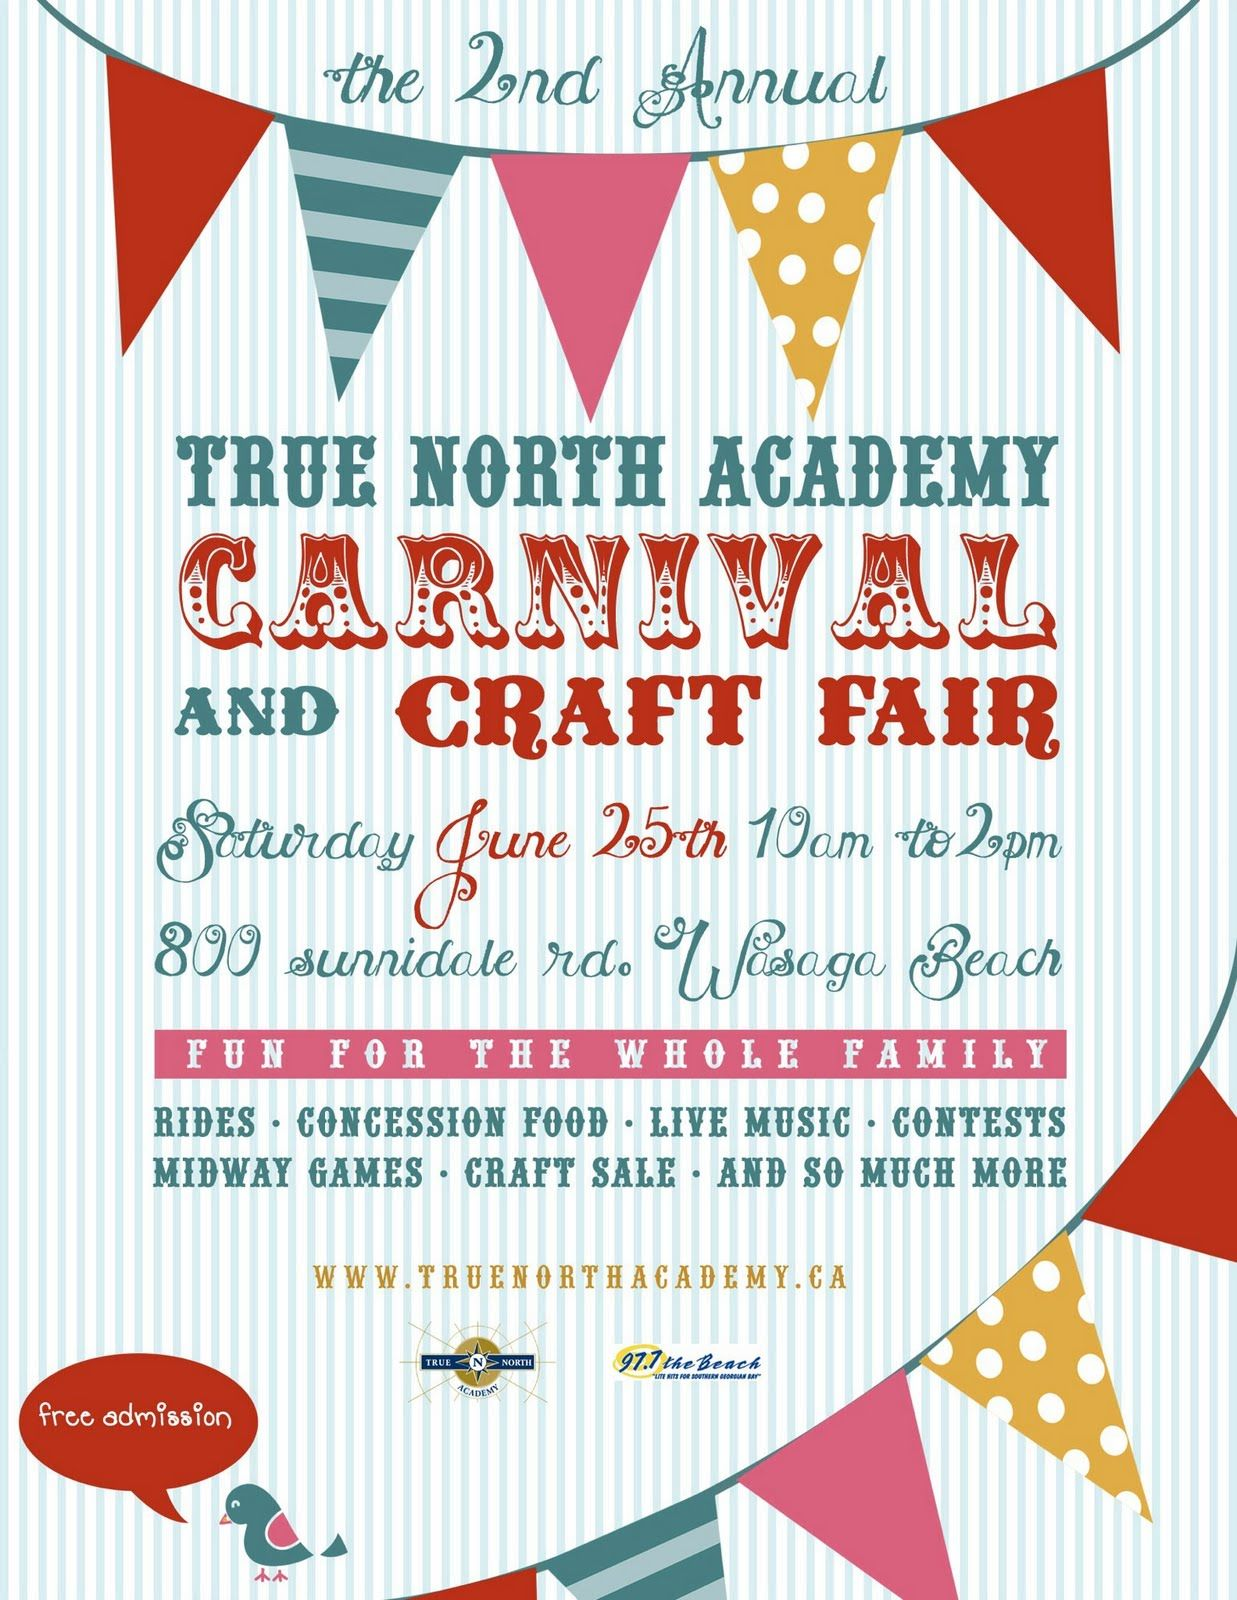 Serendipity Soiree Vintage Orange And Aqua Circus Theme Party Carnival Poster Design Request